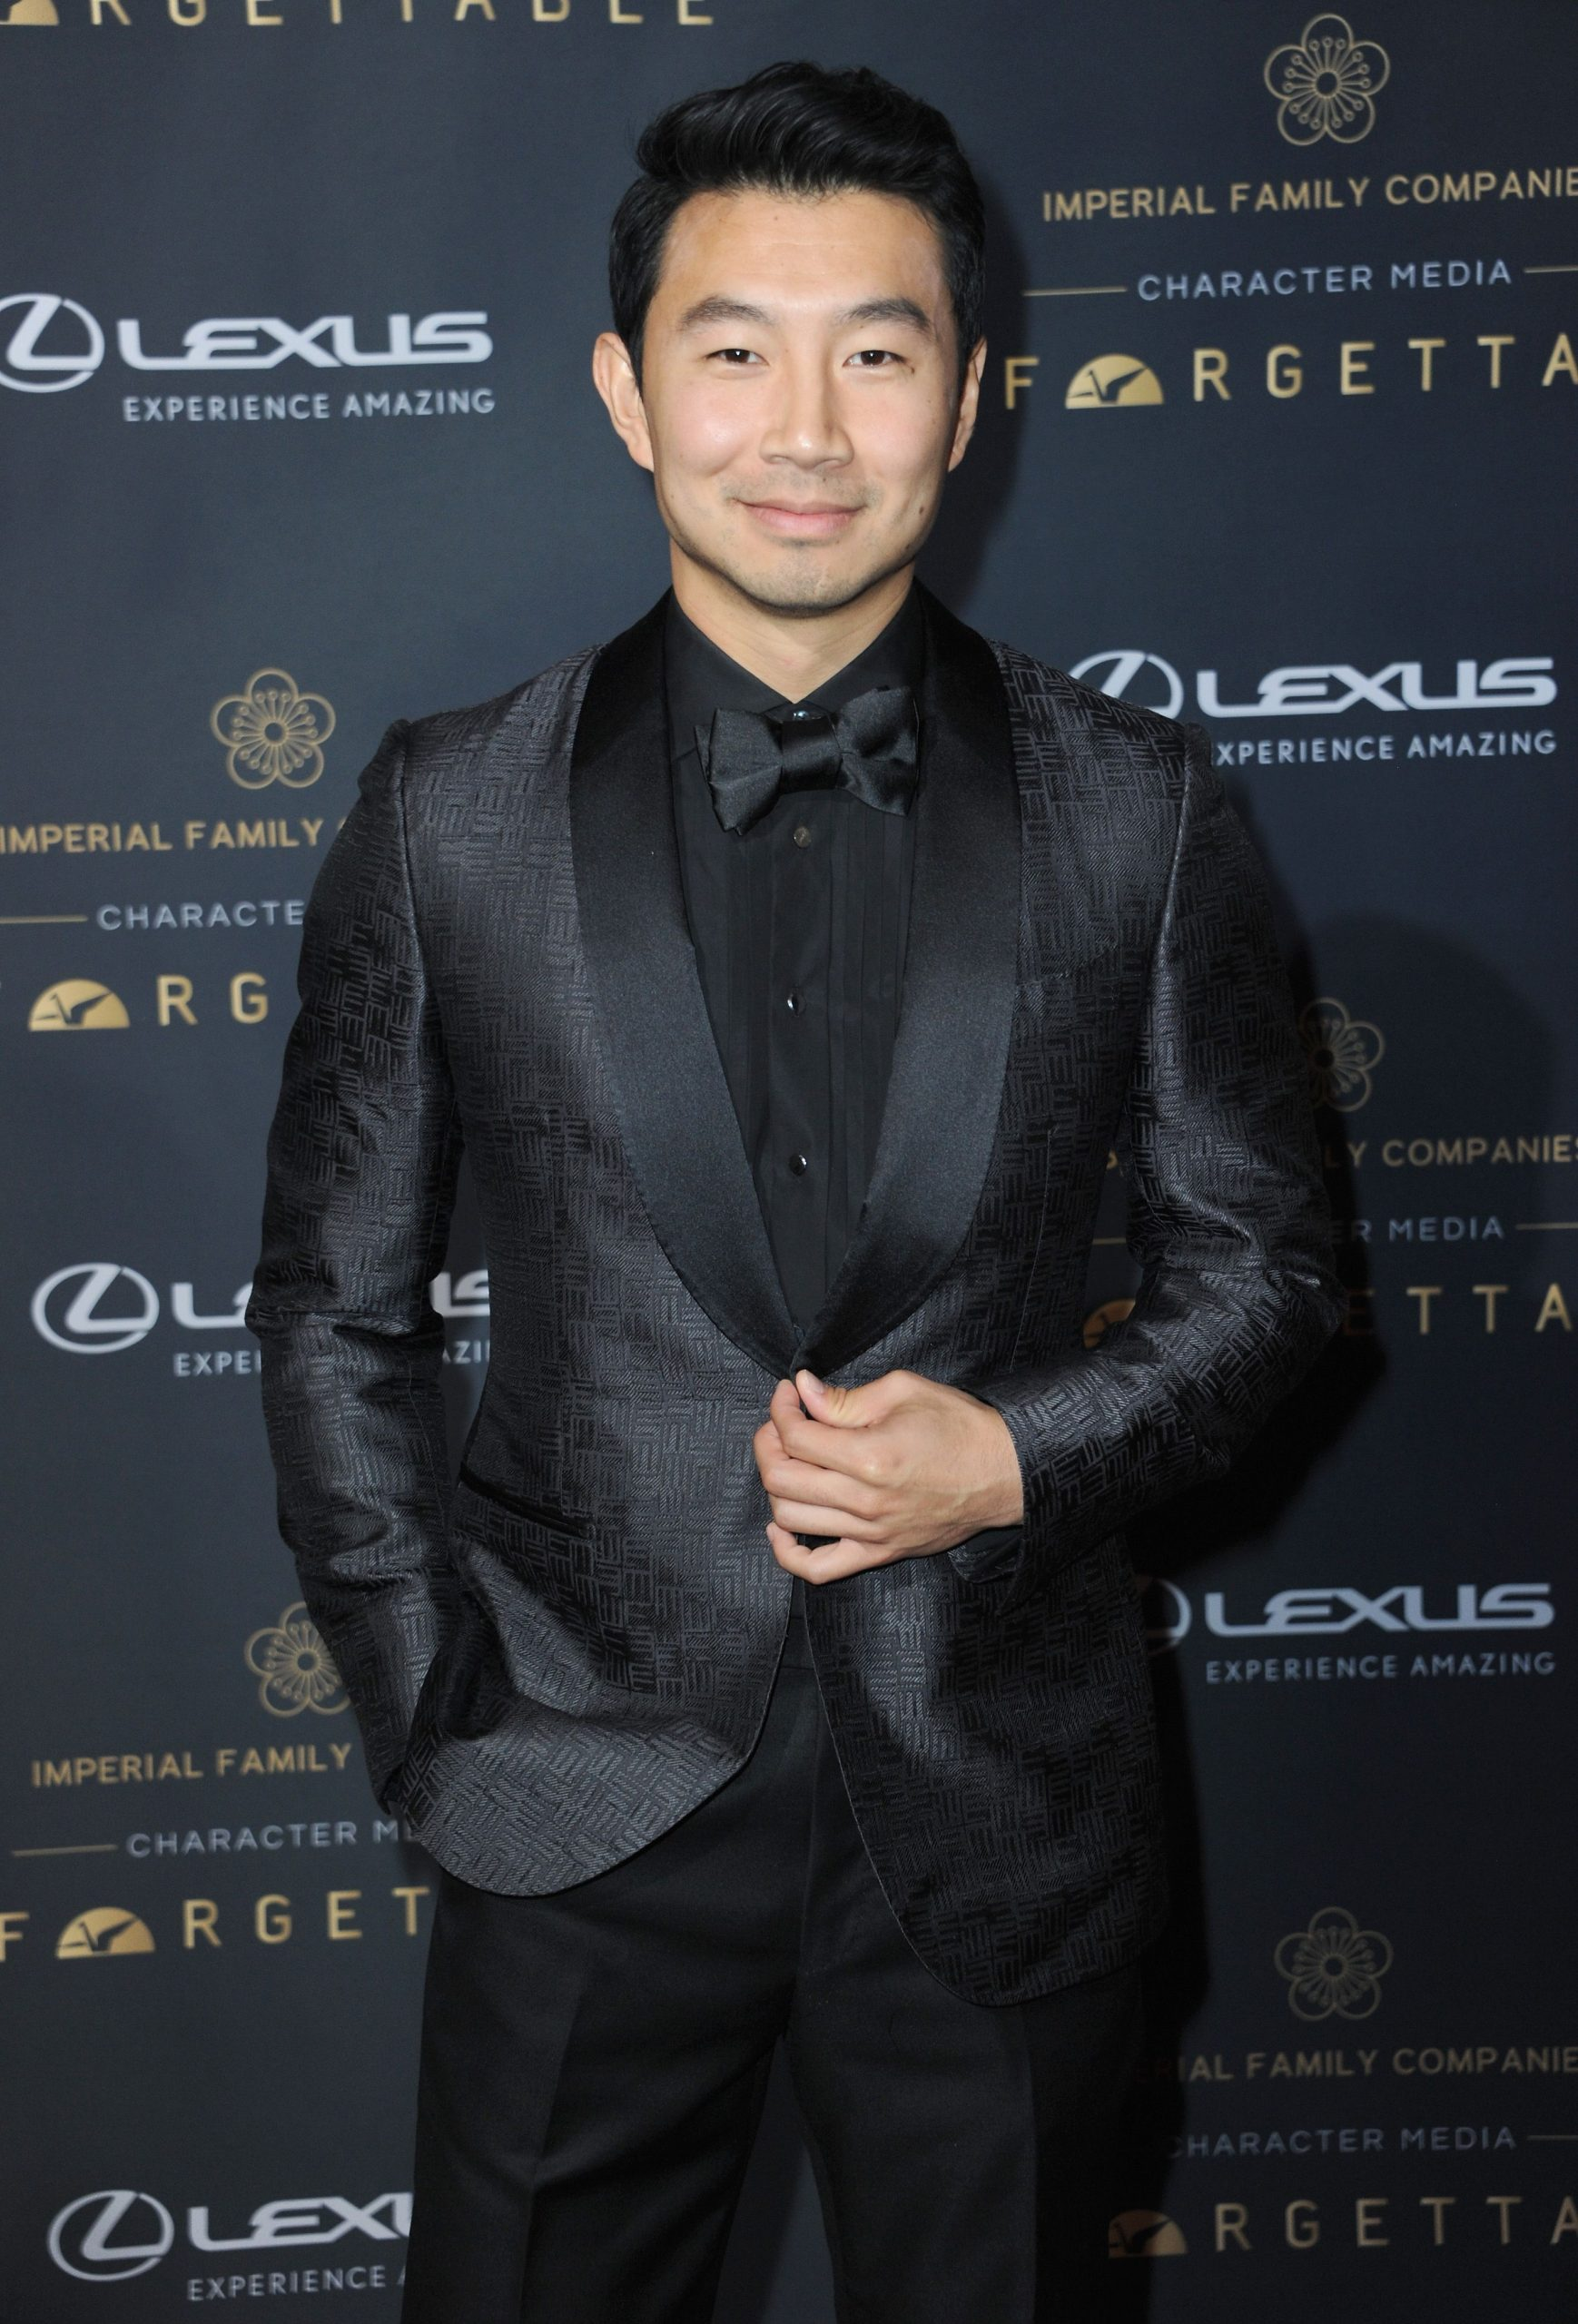 Simu Liu arrives for the 18th Annual Unforgettable Gala